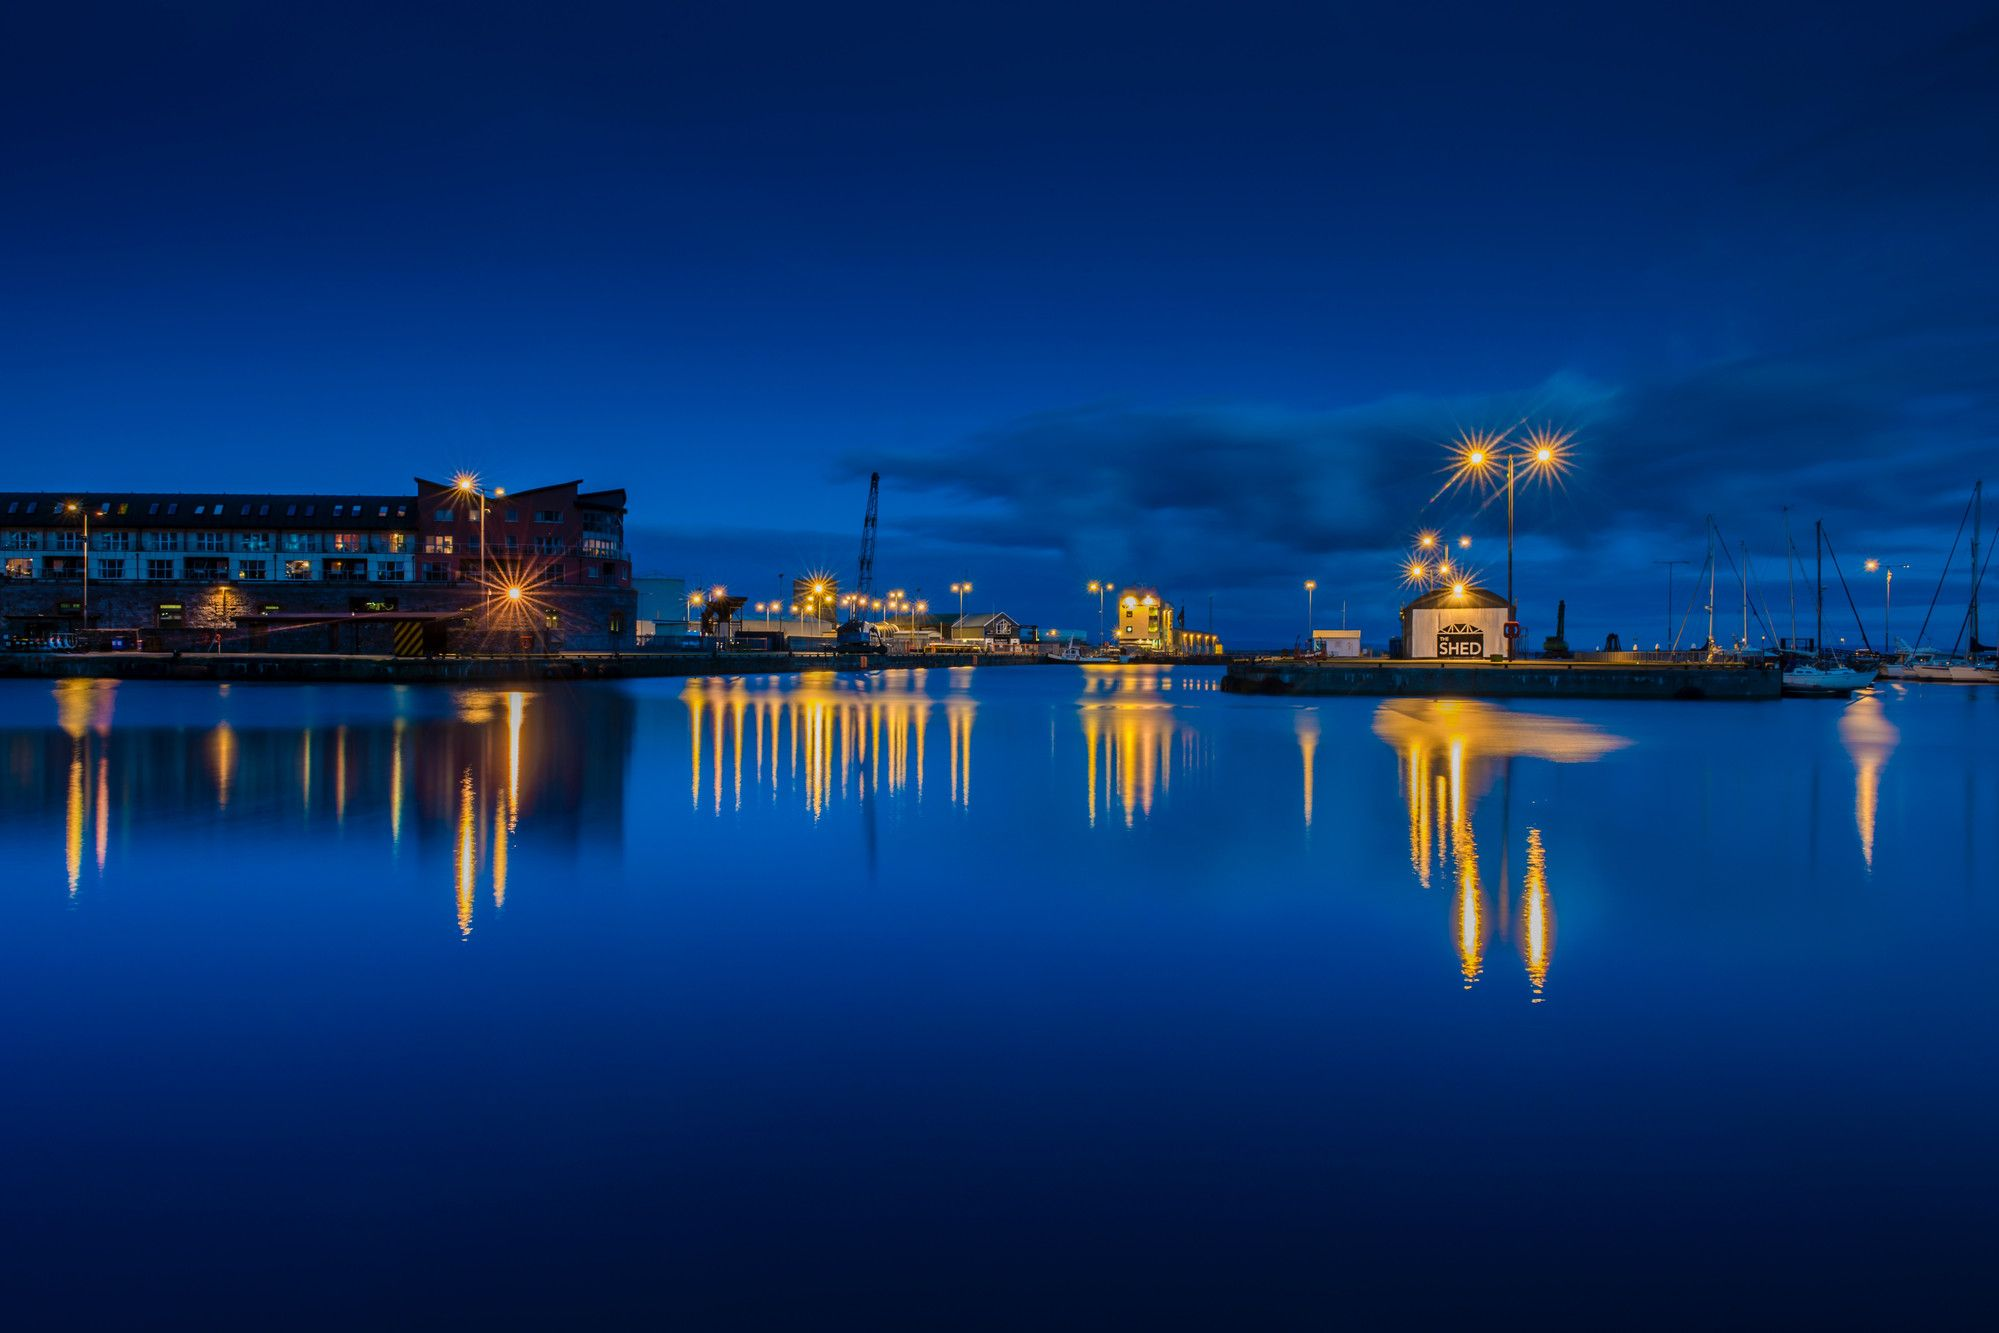 Galway docks galway docks is located on the west coast of